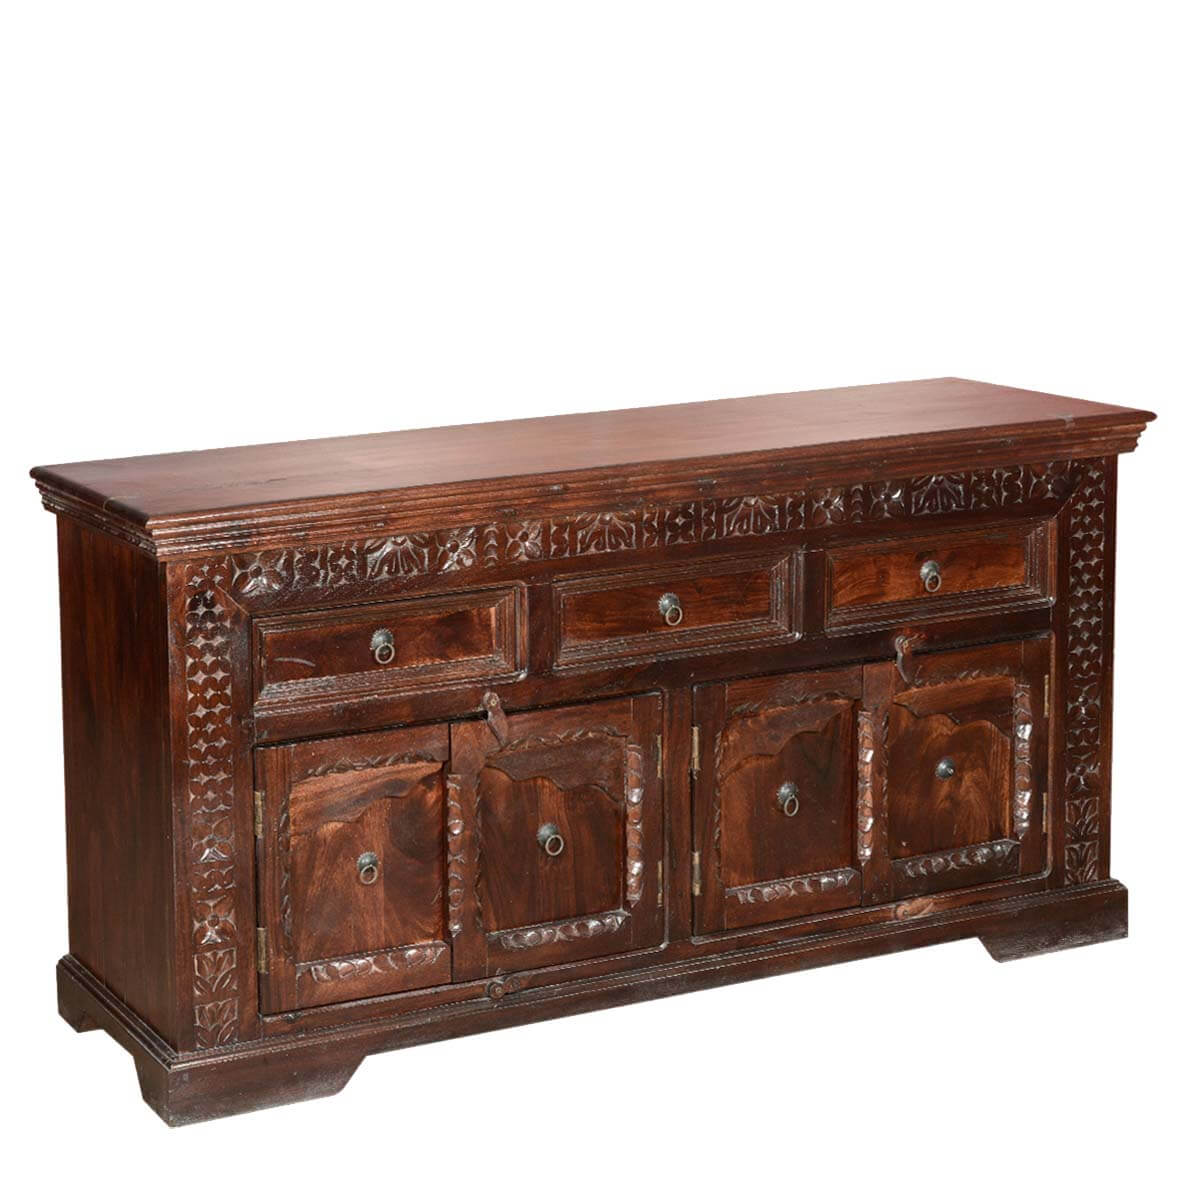 Empire rustic solid wood door drawer sideboard